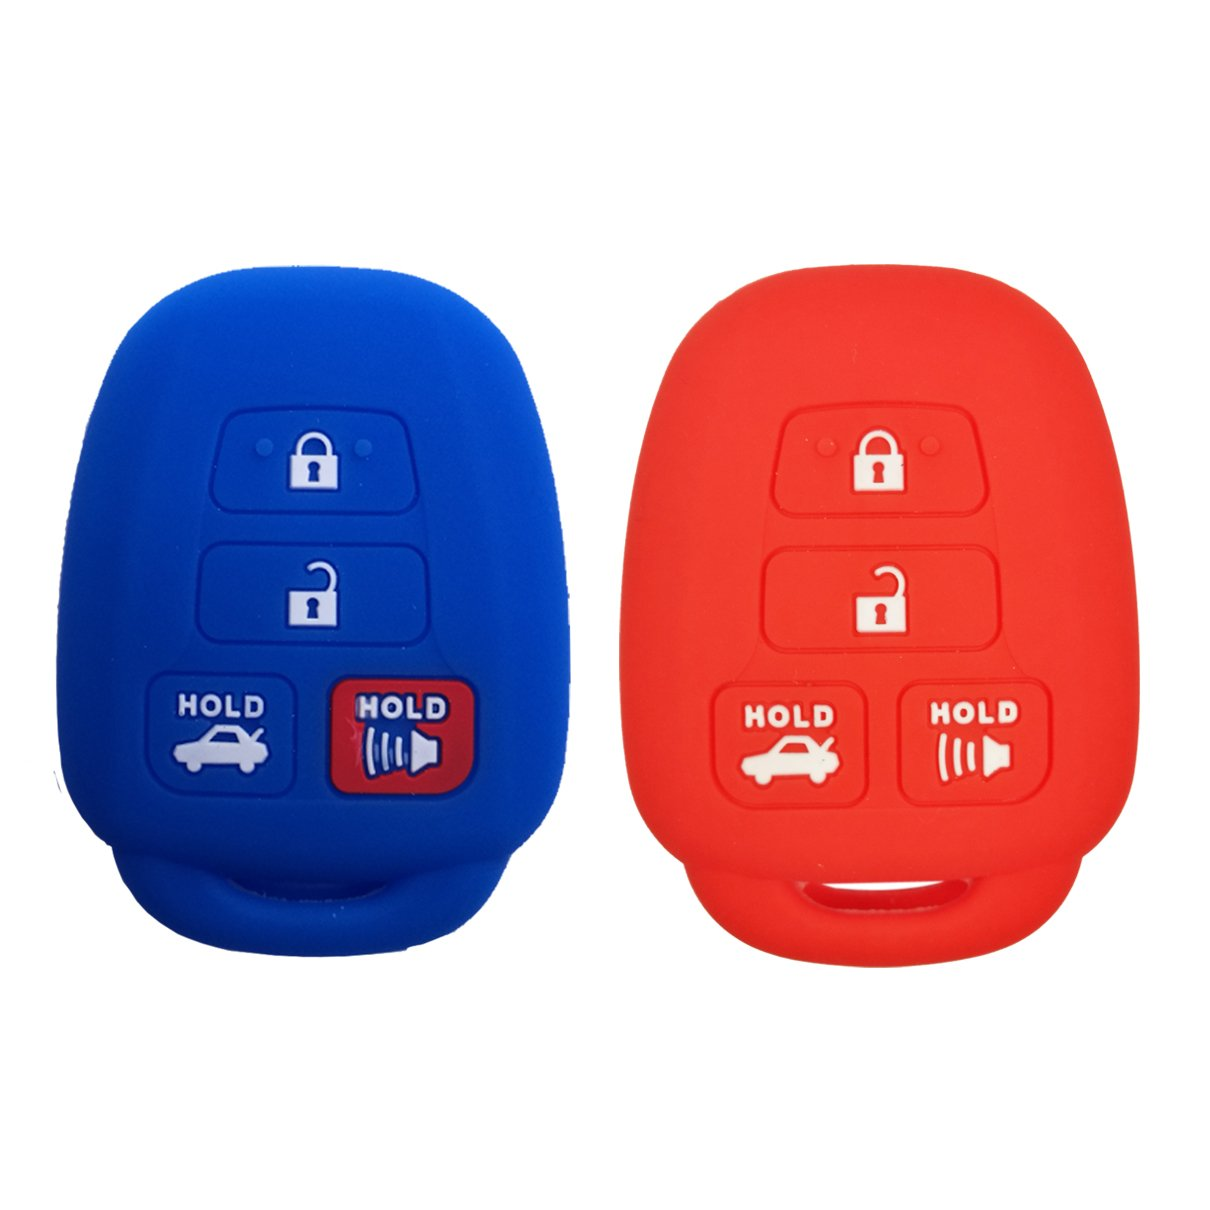 Coolbestda 4Buttons Key fob Remote Cover Keyless Jacket Protector Holder for Toyota Camry SE LE Avalon Corolla RAV4 Venza Highlander Sequoia HYQ12BDM Red